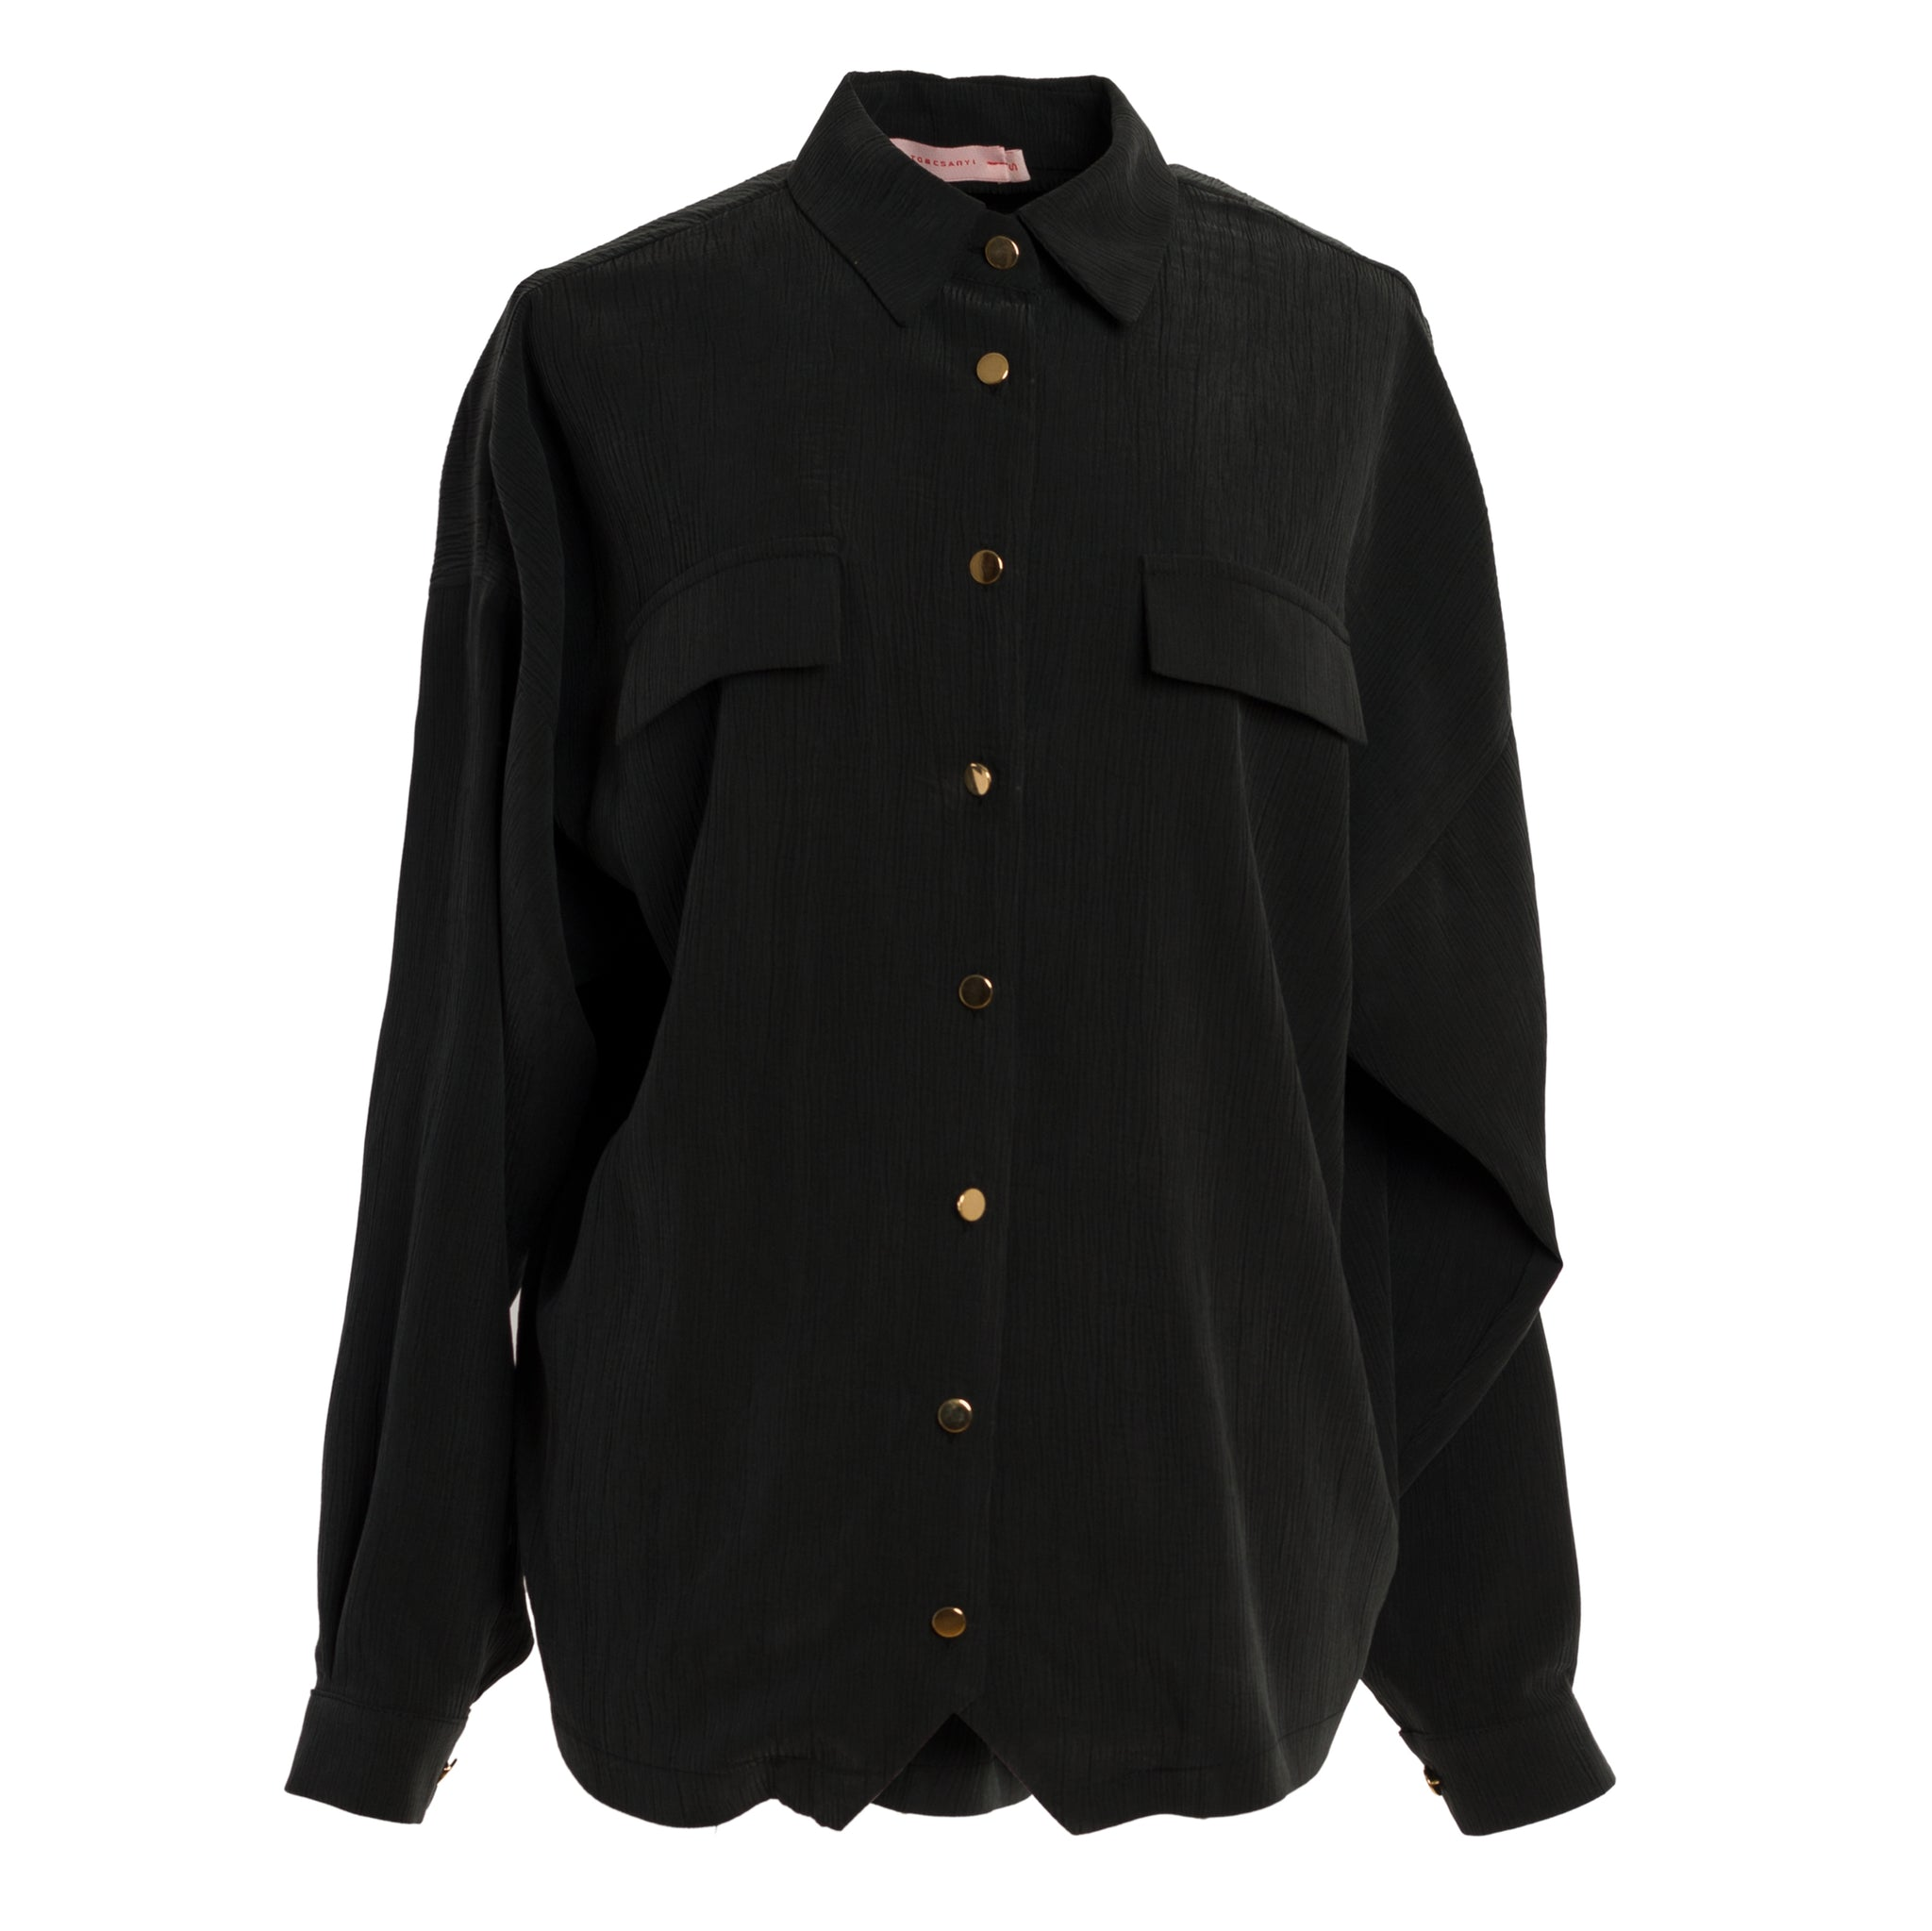 FELSZAB Charcoal Oversized Shirt